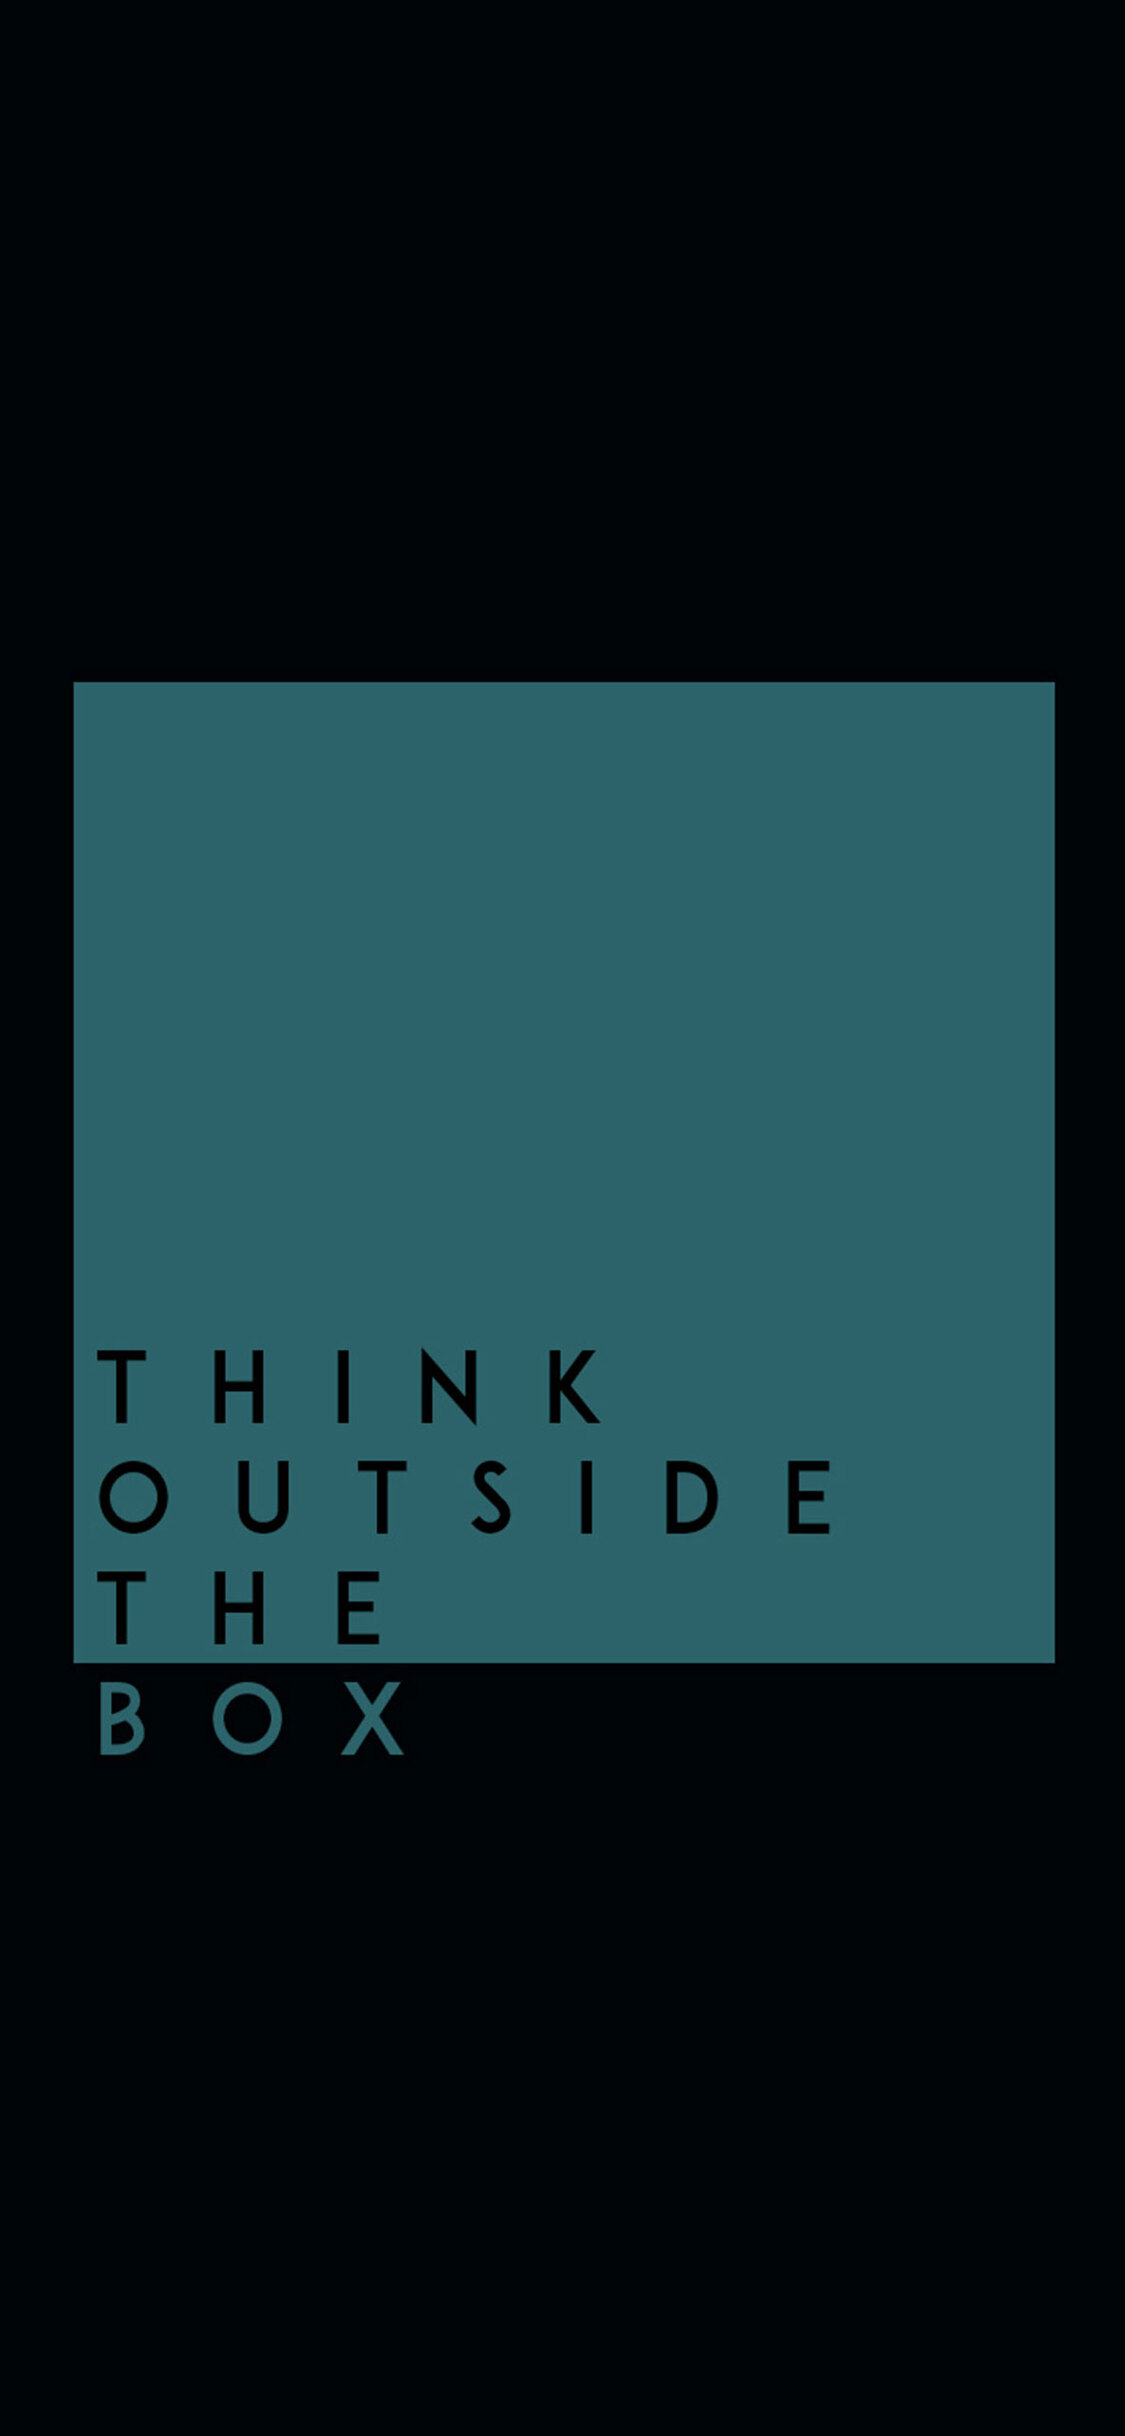 1125x2436 Think Outside The Box HD Iphone XS,Iphone 10,Iphone X HD 4k Wallpapers, Images ...